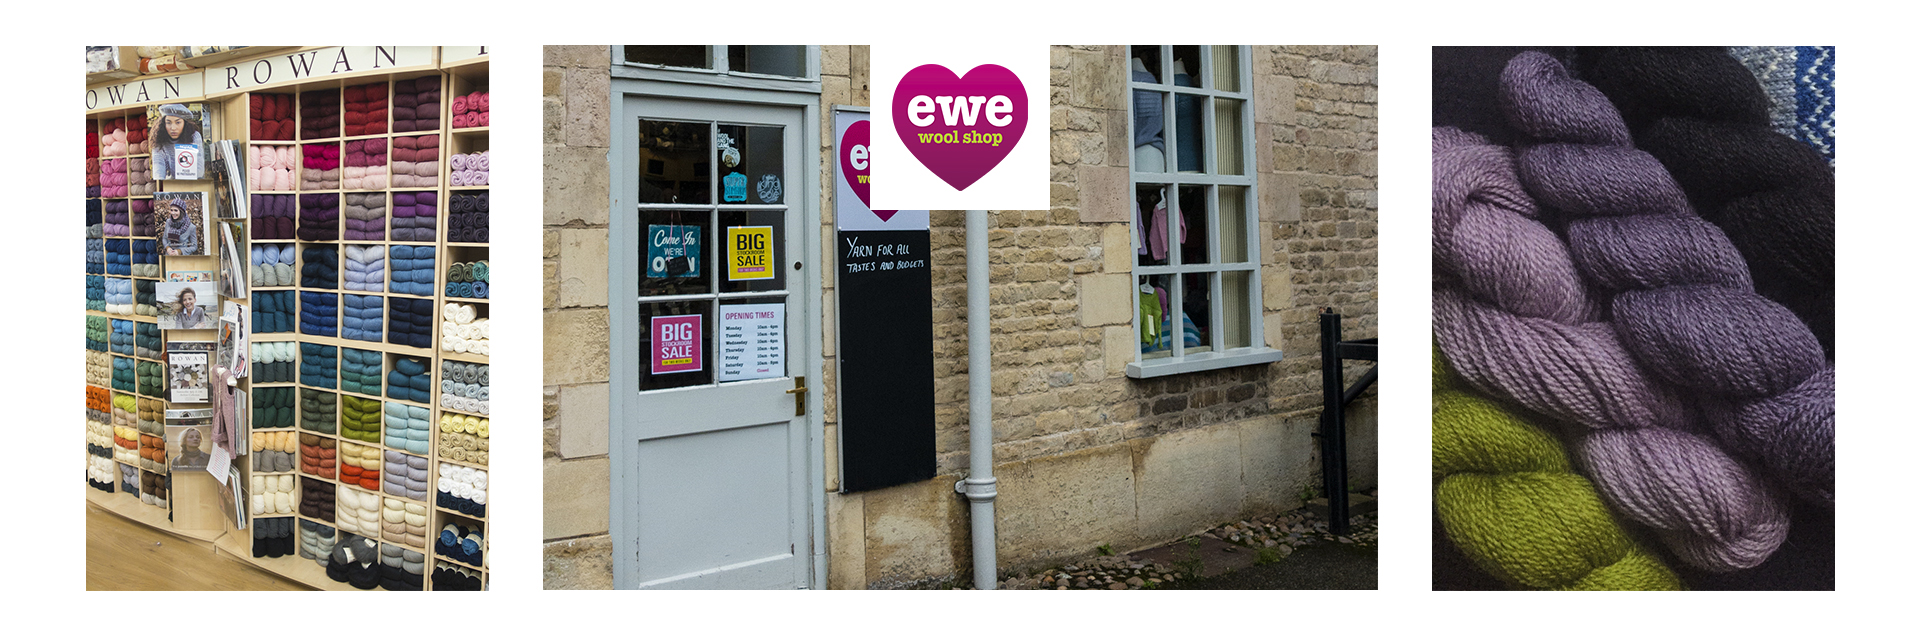 Ewe wool shop is in the beautiful town of Stamford, Lincolnshire.You can find us at 4 Stamford Walk just off the High Street. Ewe was opened in 2011 by Rachel and became a Flagship store in 2017. The business has continued to grow and we are now online too. We stock a large range of mainly natural fibres for knitting and crochet.